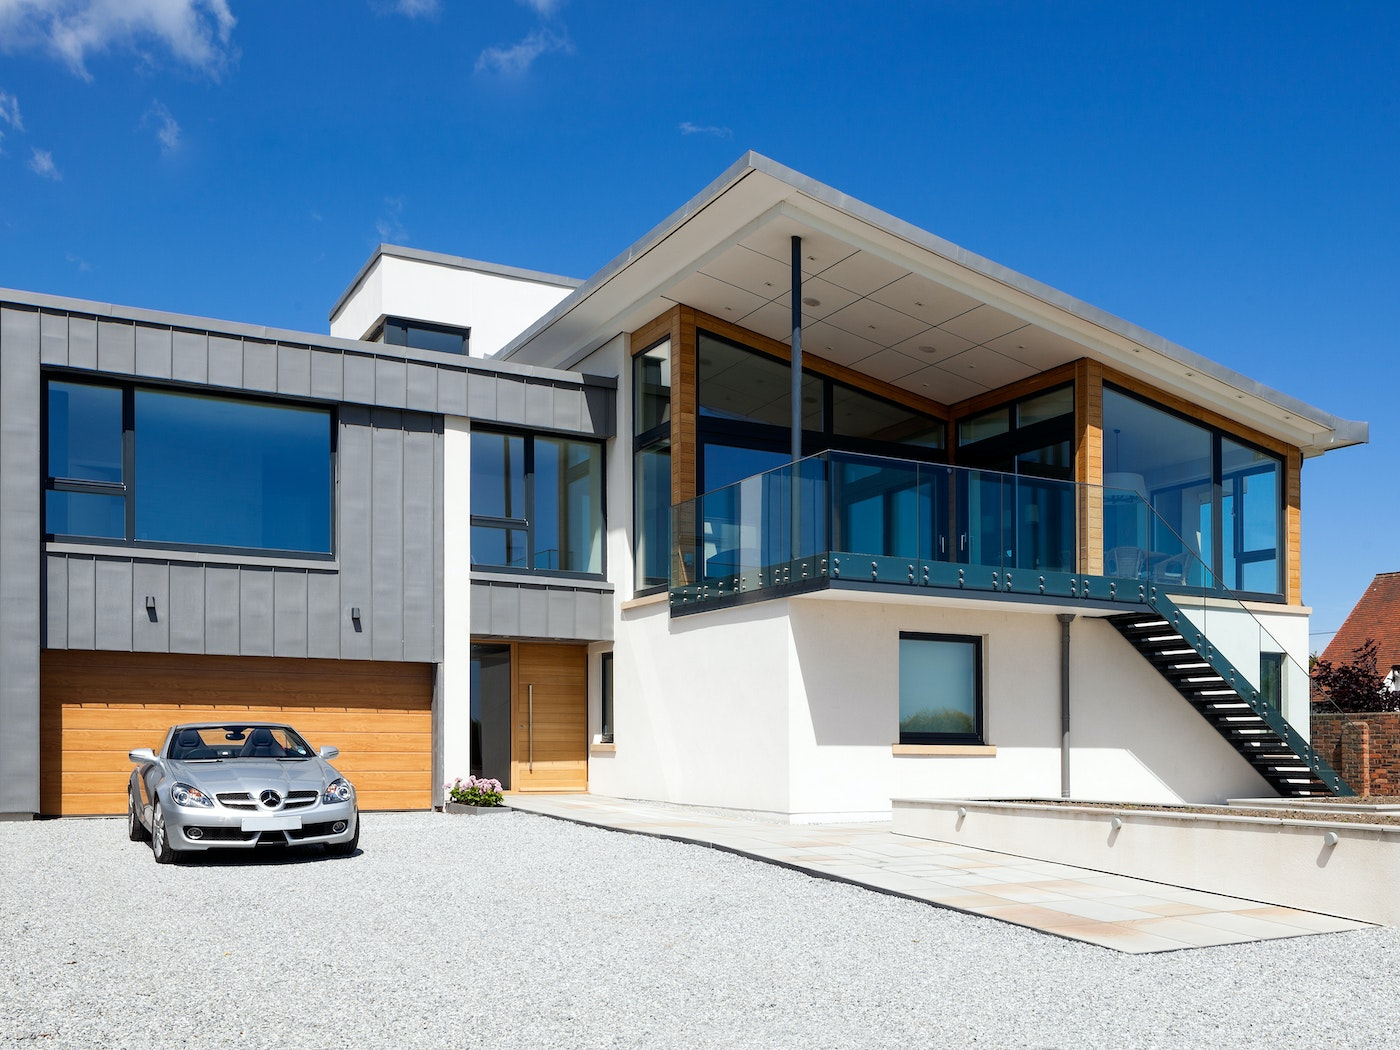 These matching front & garage doors work well in this property that features a lot of different glass and stonework